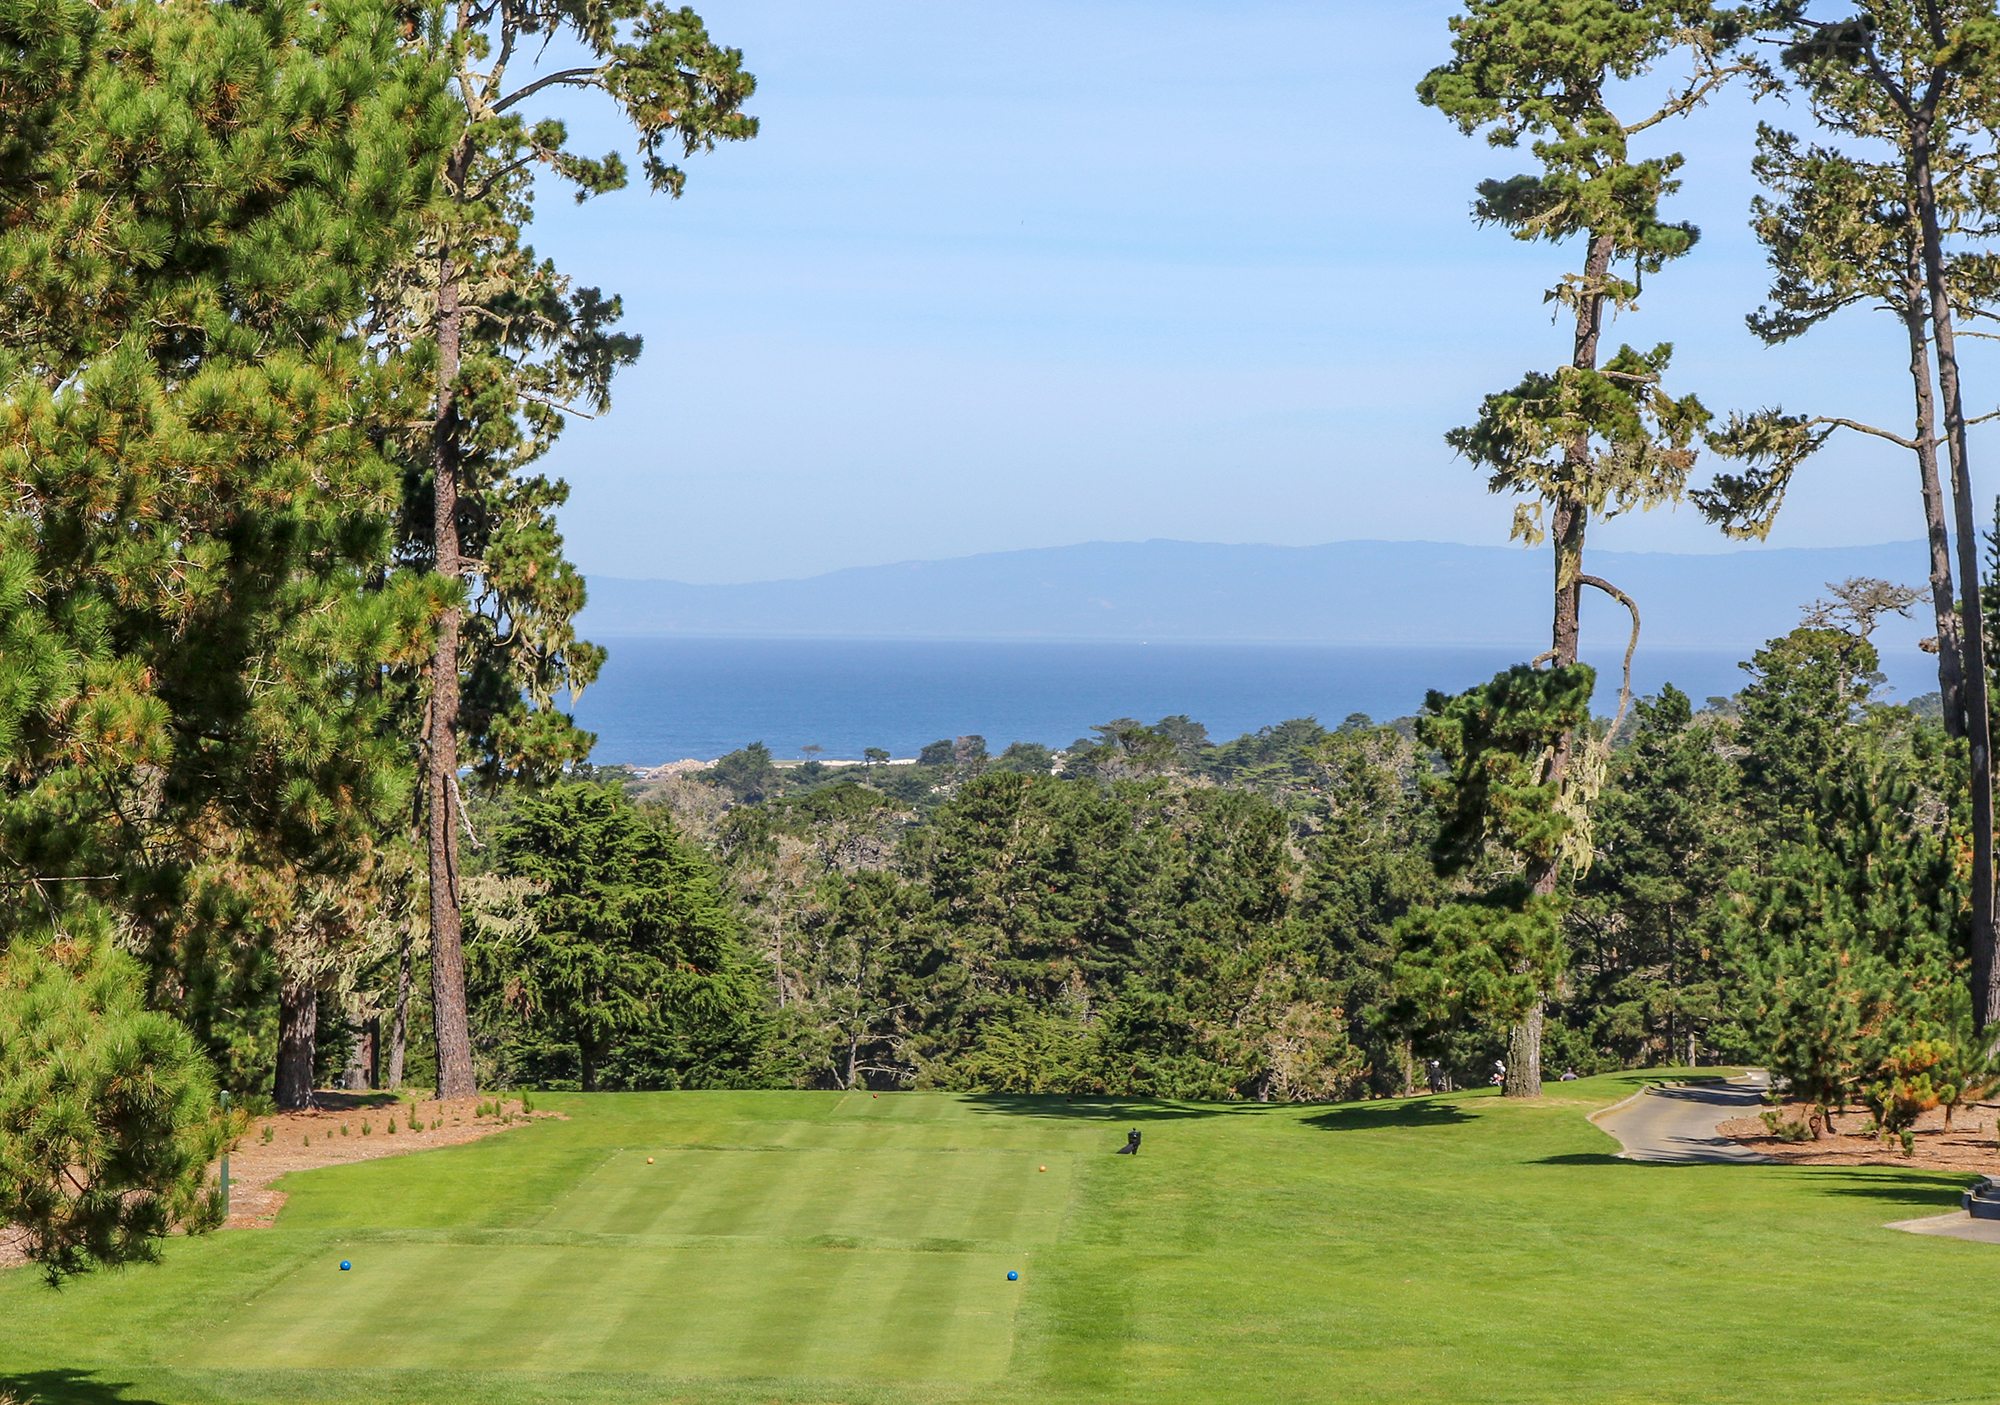 1st hole at Spyglass Hill